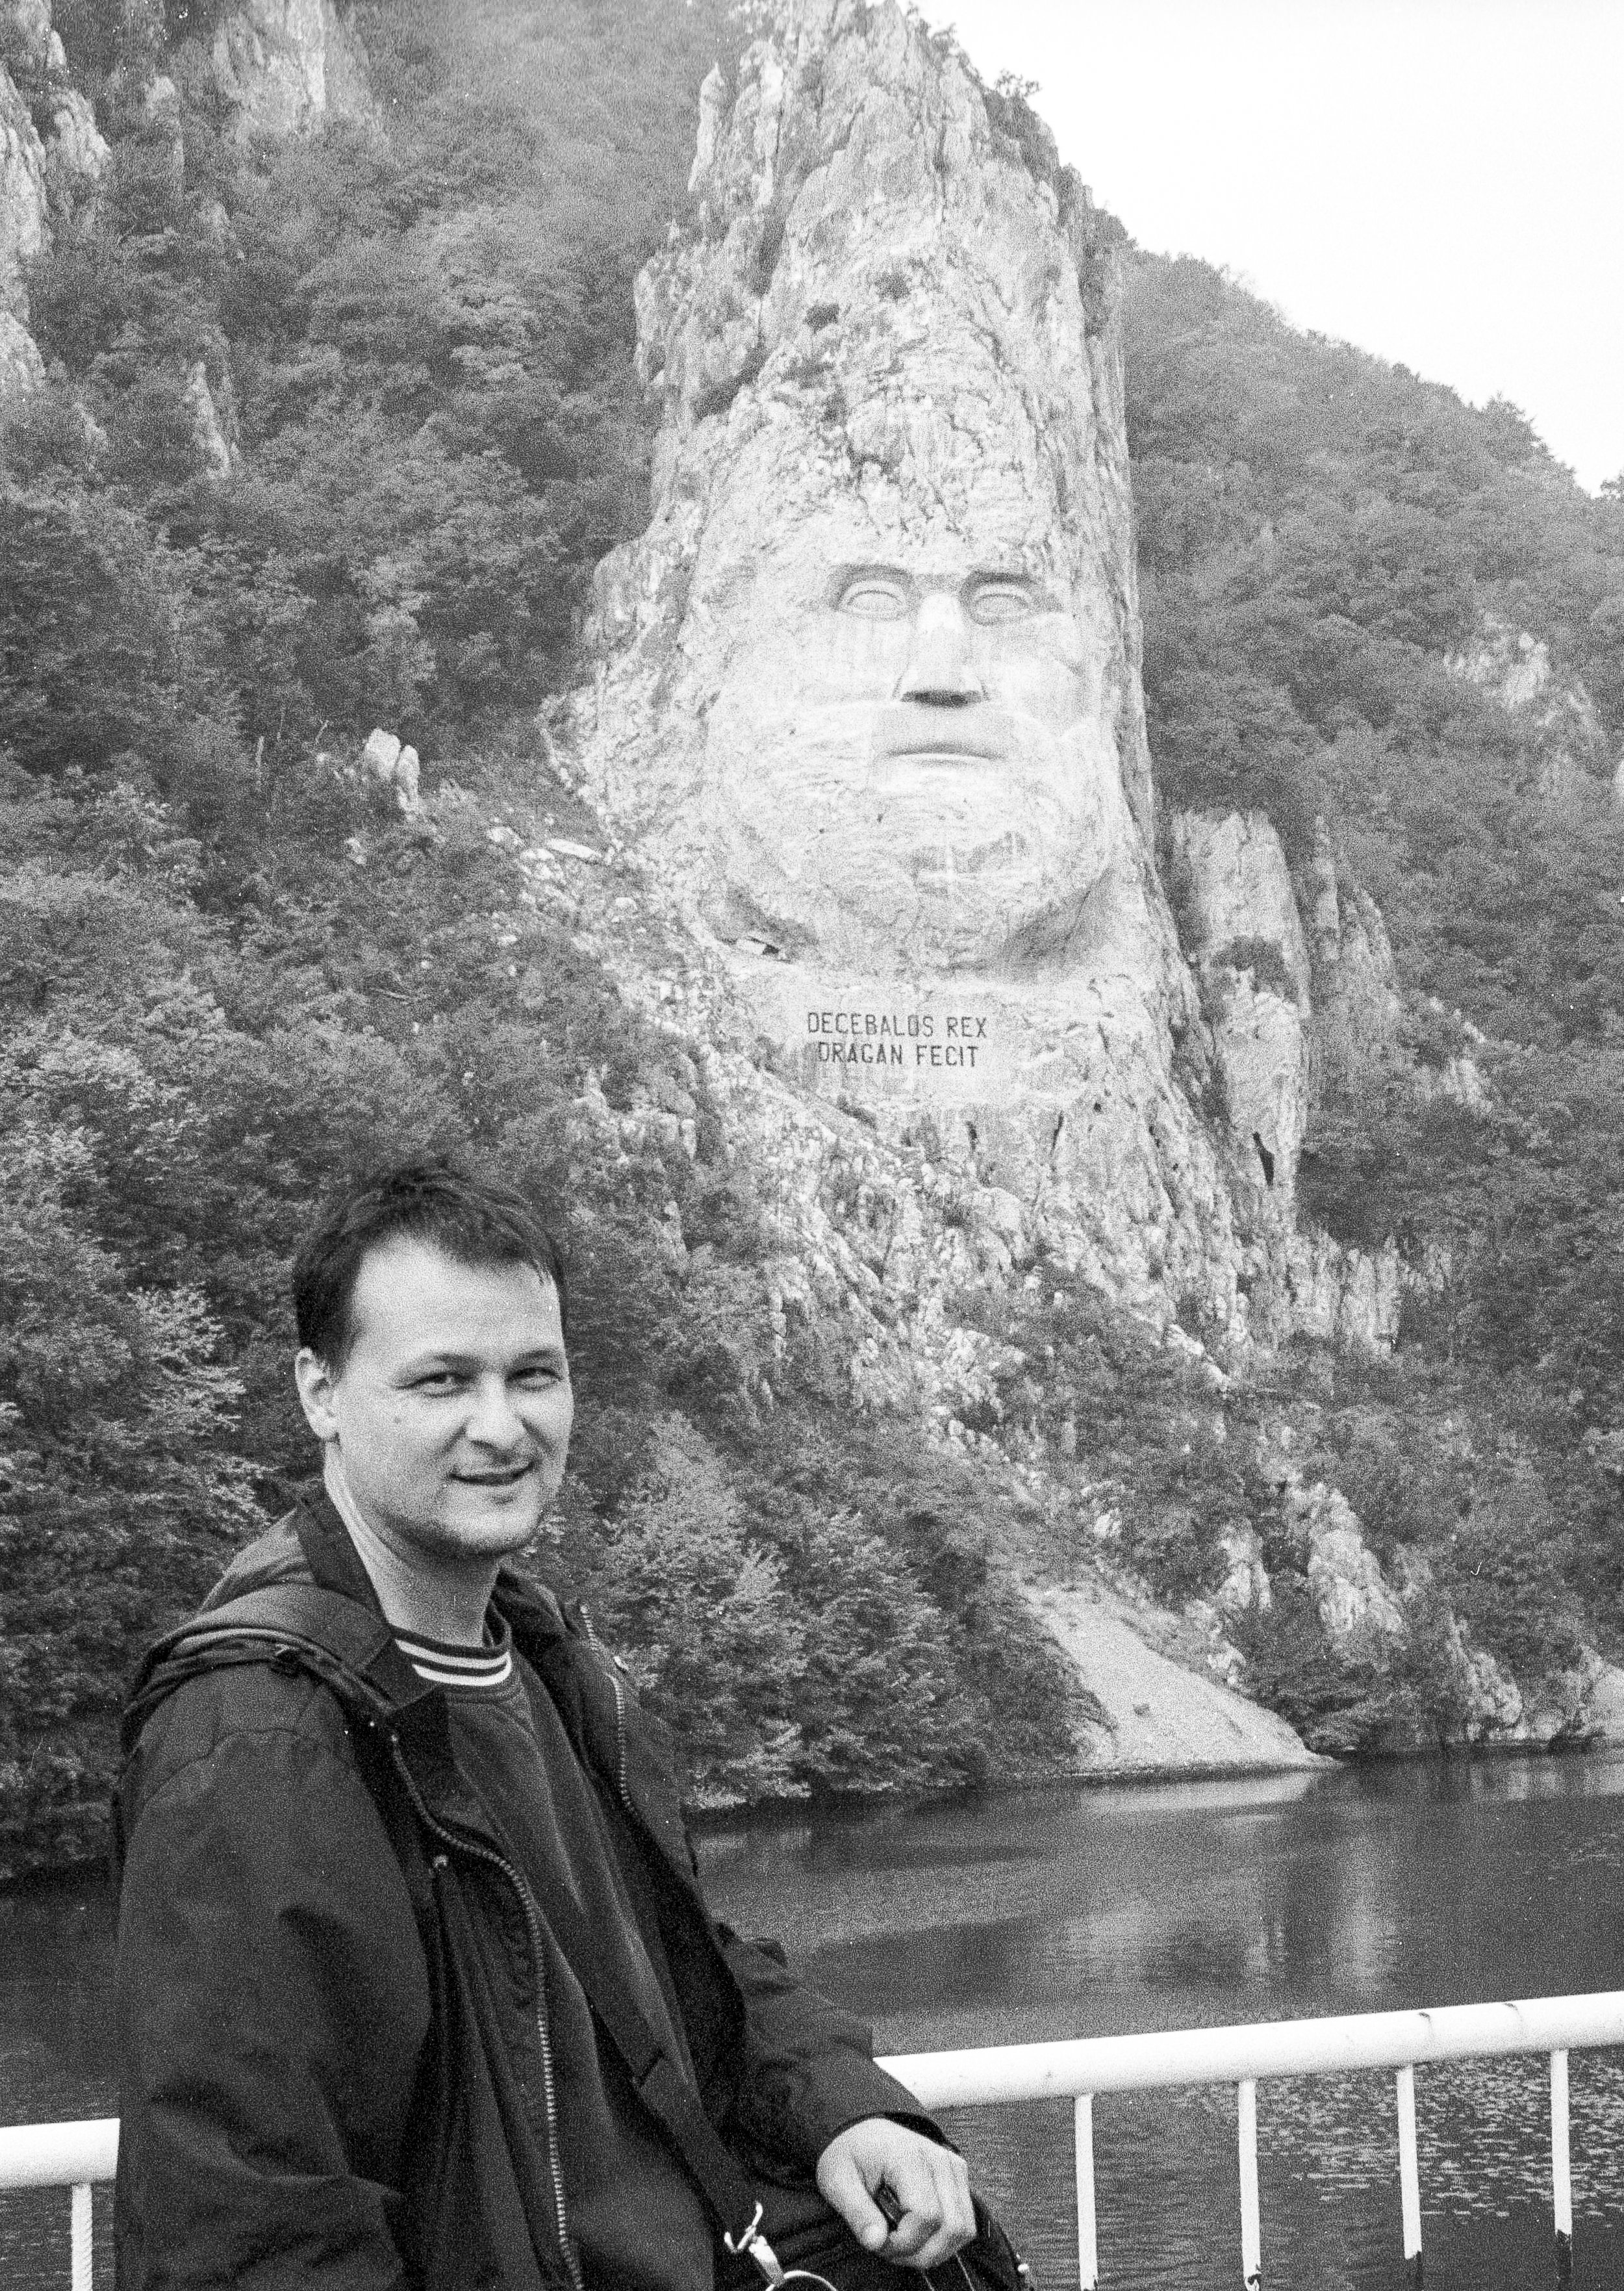 Dan in front of Europe's tallest rock sculpture. The Decebalus Monument in Romania. (Photo taken by my taxi driver who oddly enough looked like the late TV journalist Tim Russert.